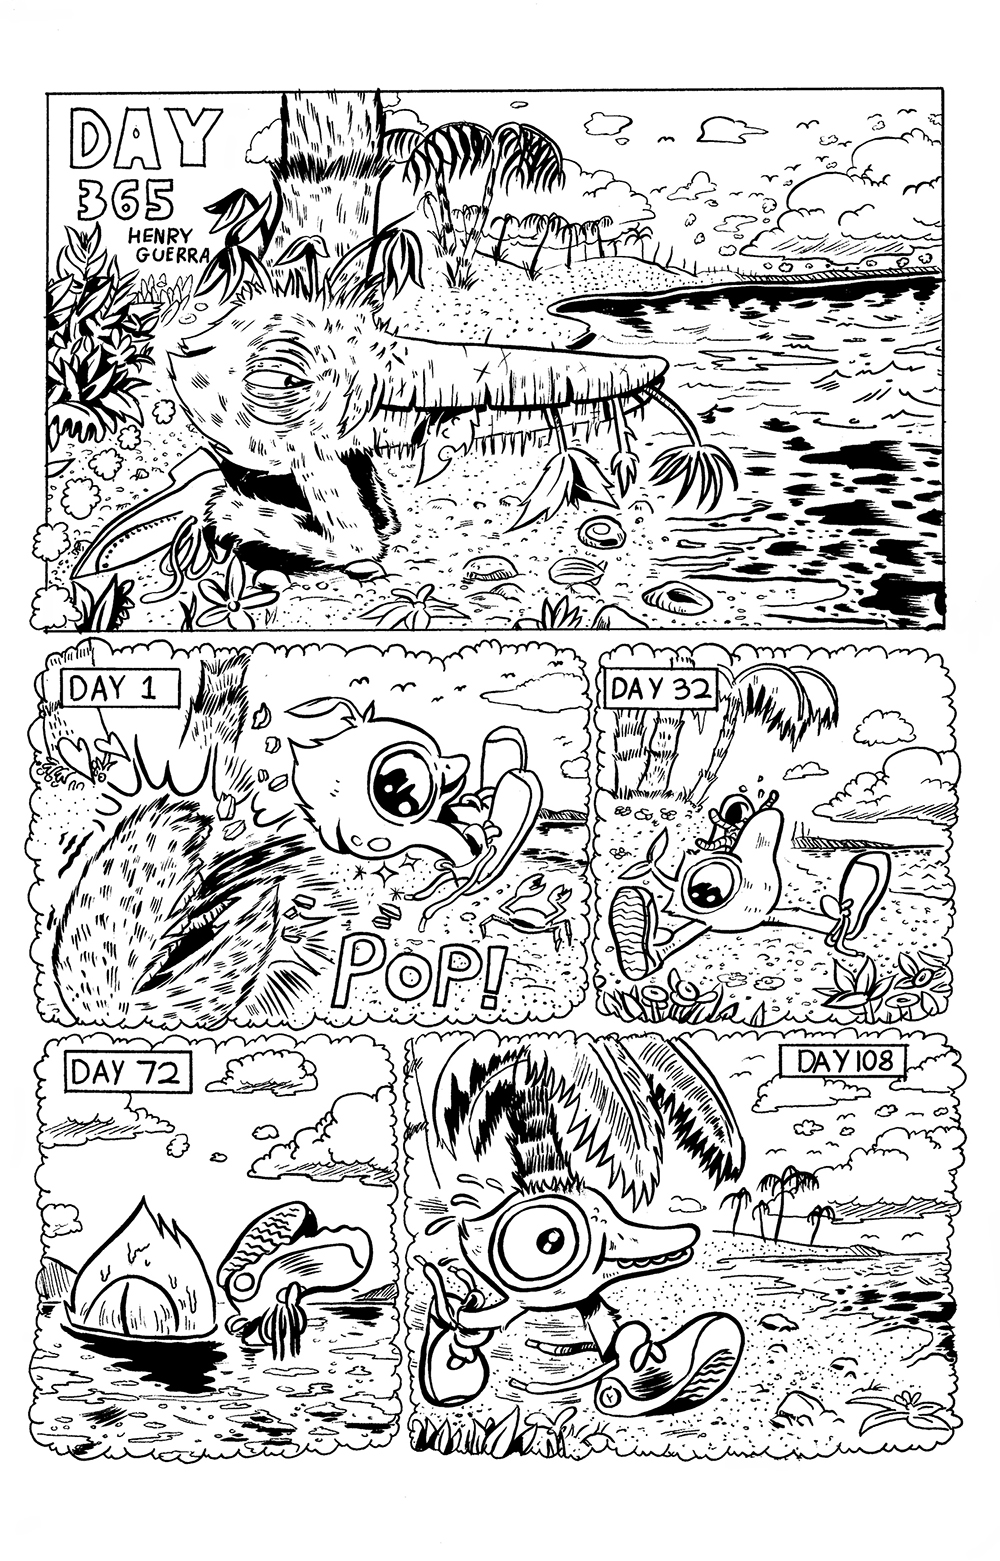 Comic by Henry Guerra, page 1